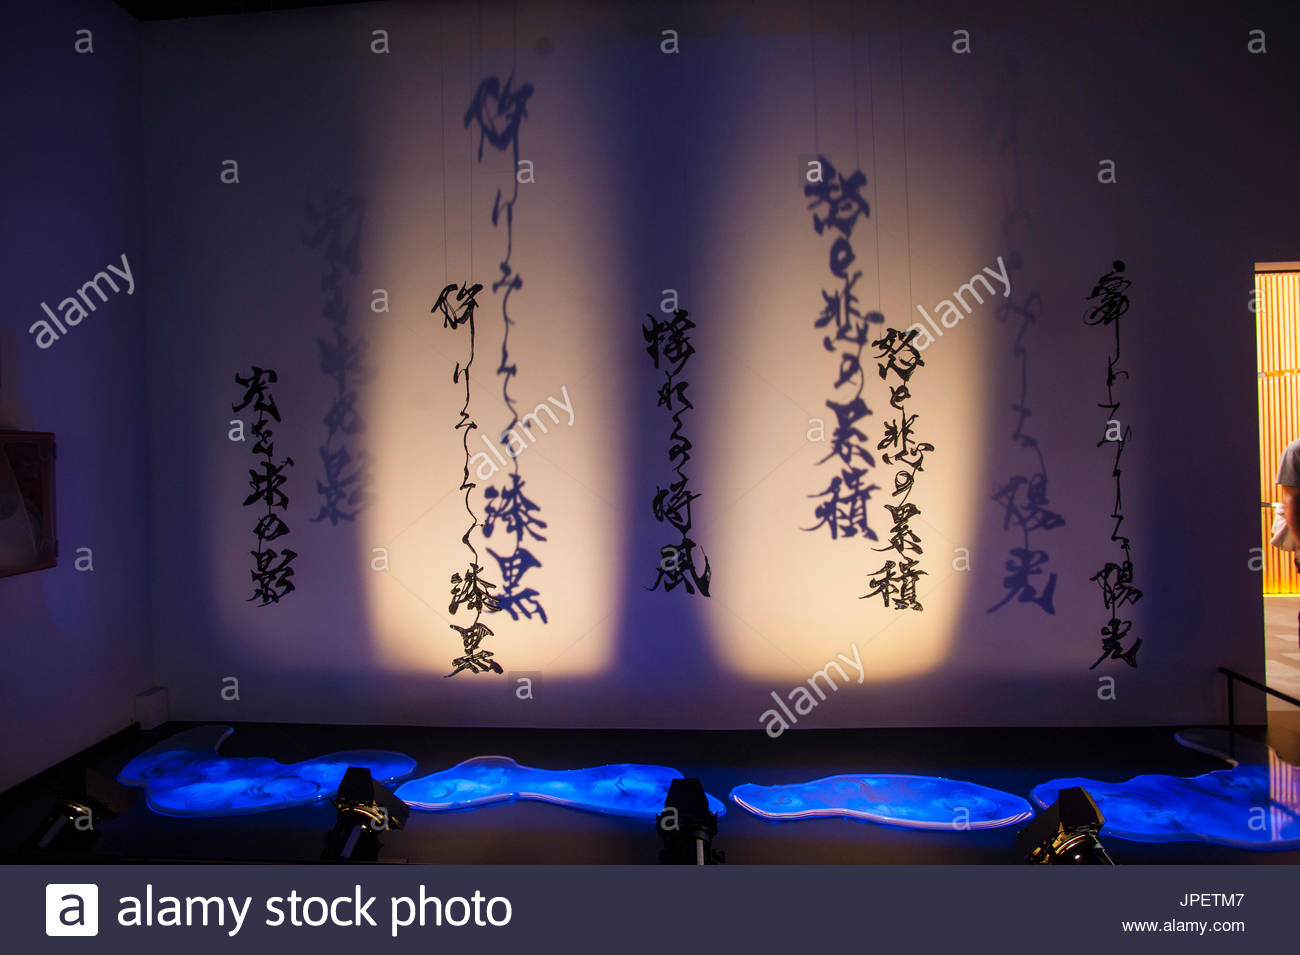 pavilion of Japan, the issue of participation 'harmonious diversity', expo milano 2015 - Stock Image